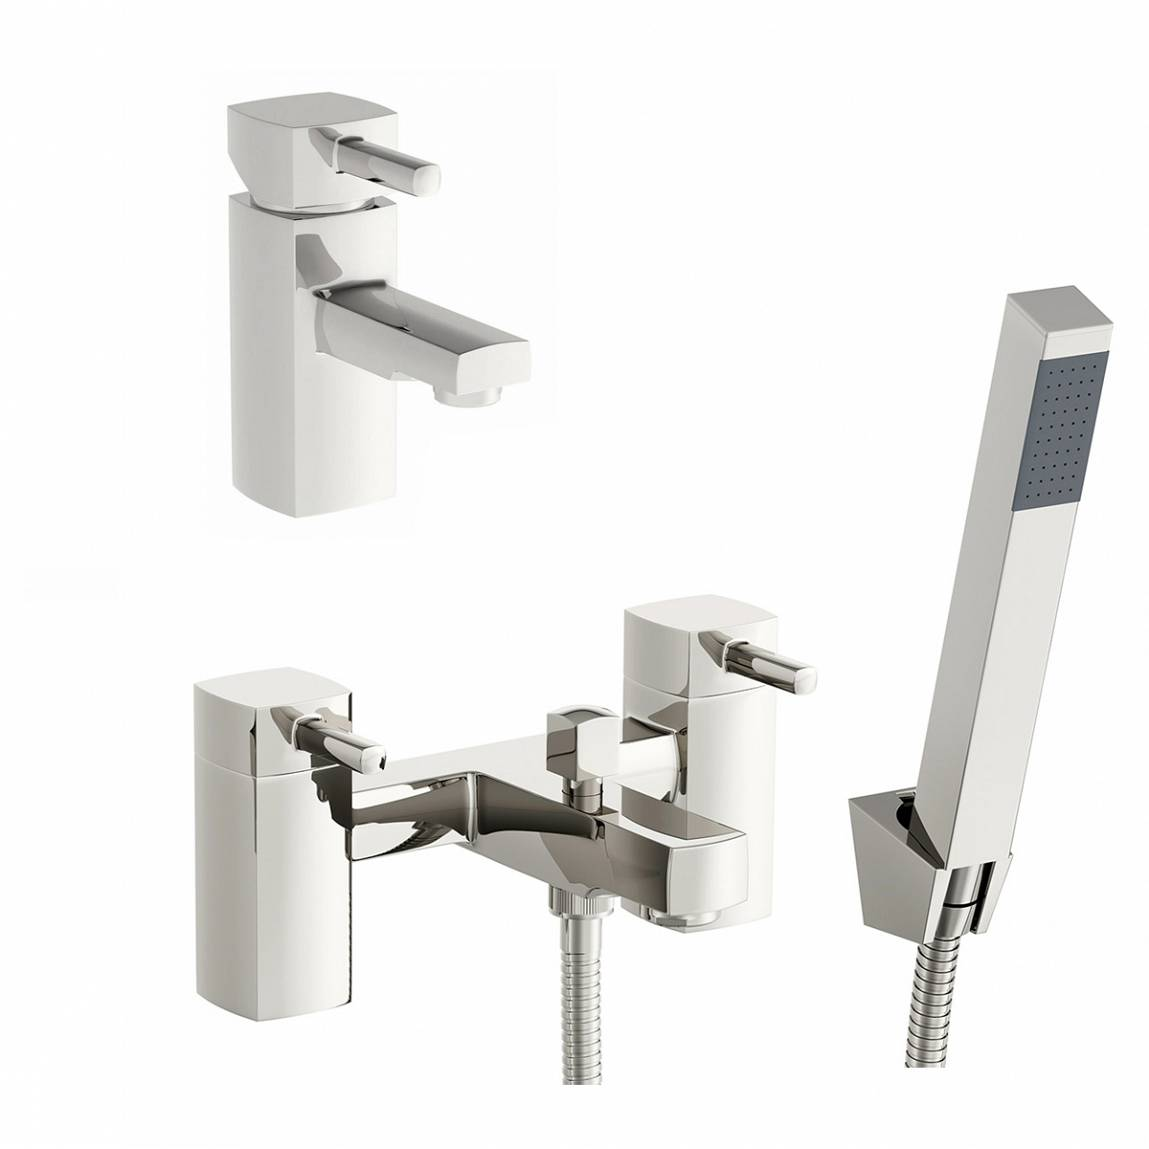 Image of Osca Basin and Bath Shower Mixer Pack